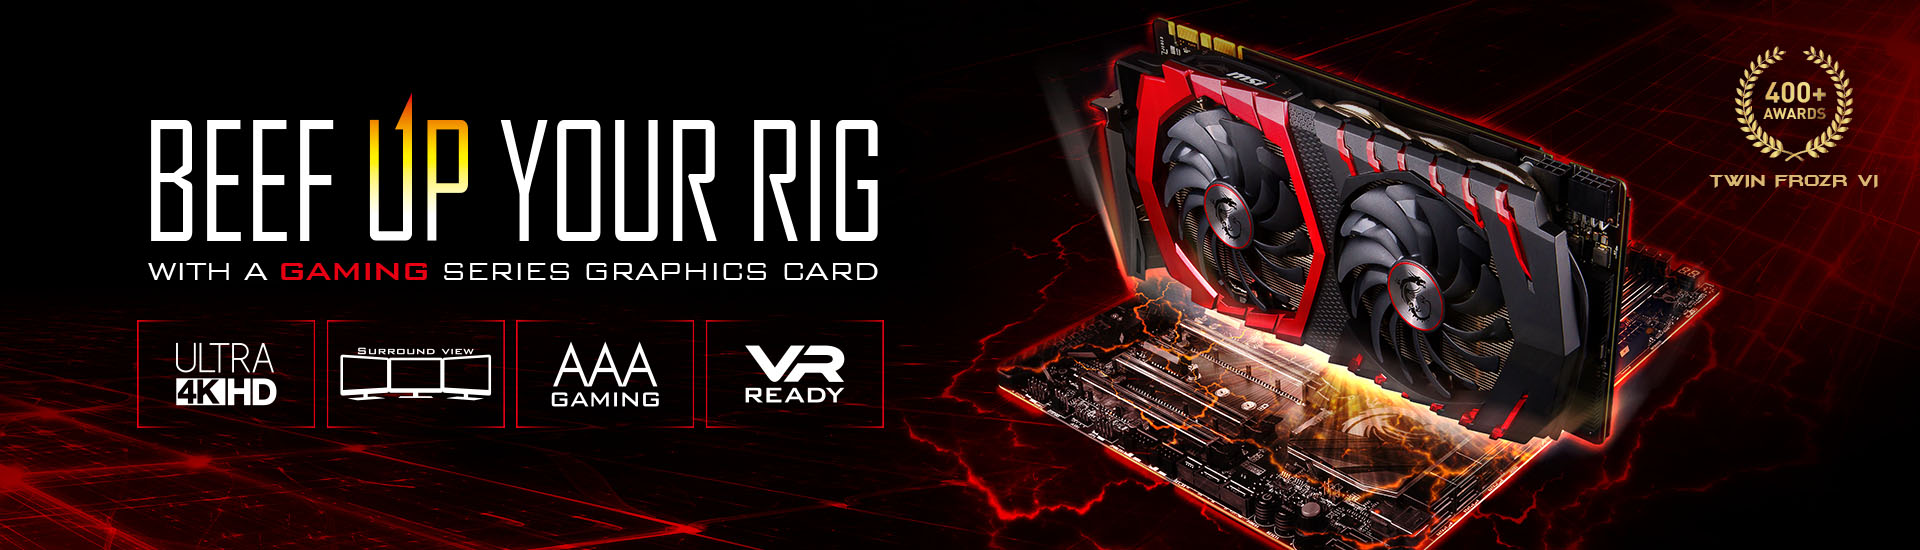 Beef Up Your Rig